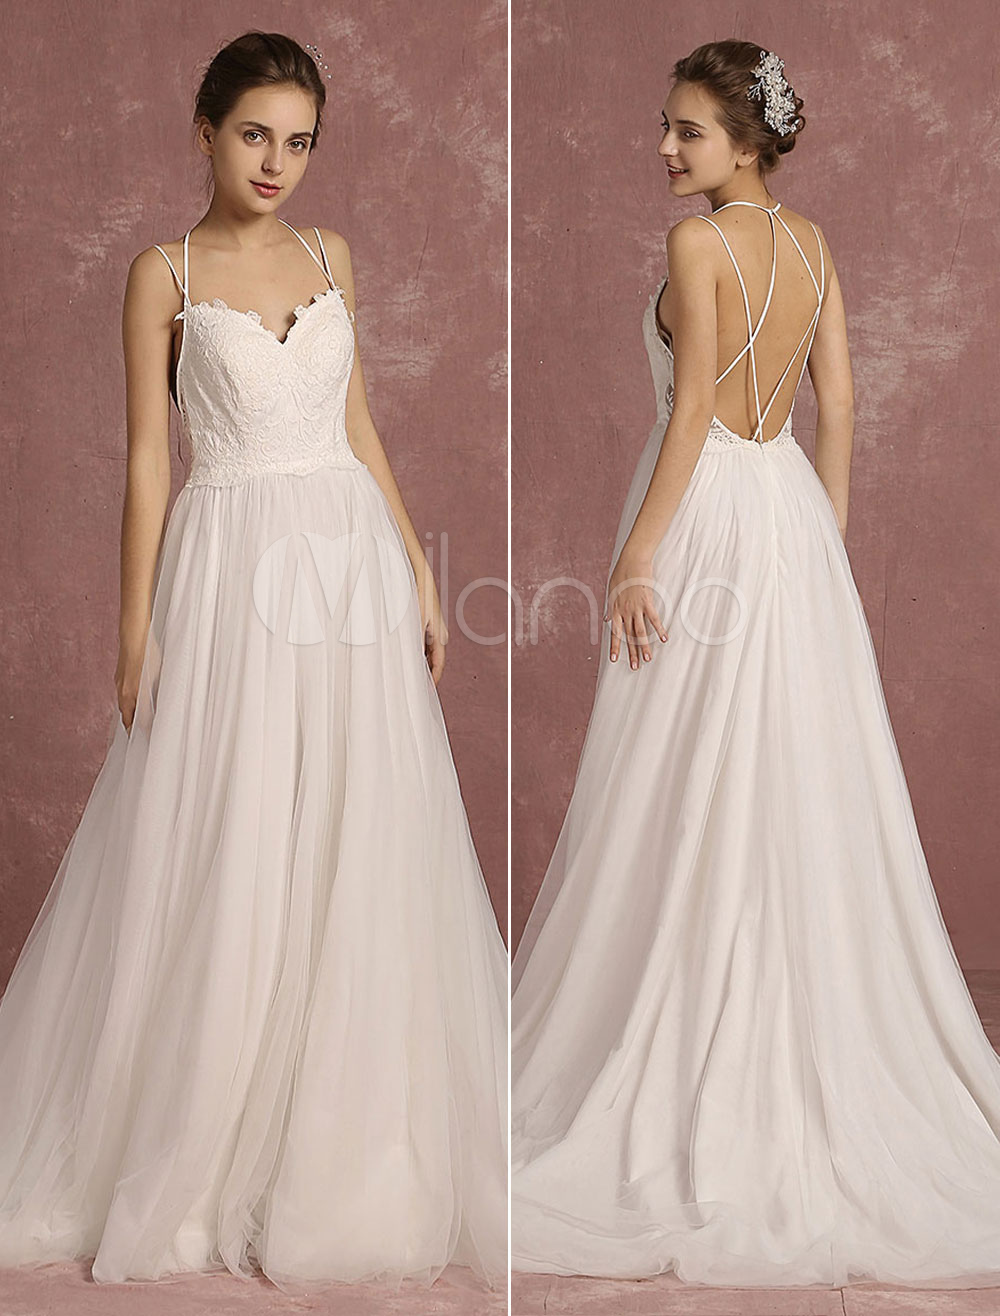 Buy Summer Wedding Dresses 2018 Boho Spaghetti Strap Sweetheart Sleeveless Bridal Gown A Line Criss Cross Backless Bridal Dress With Train for $241.19 in Milanoo store